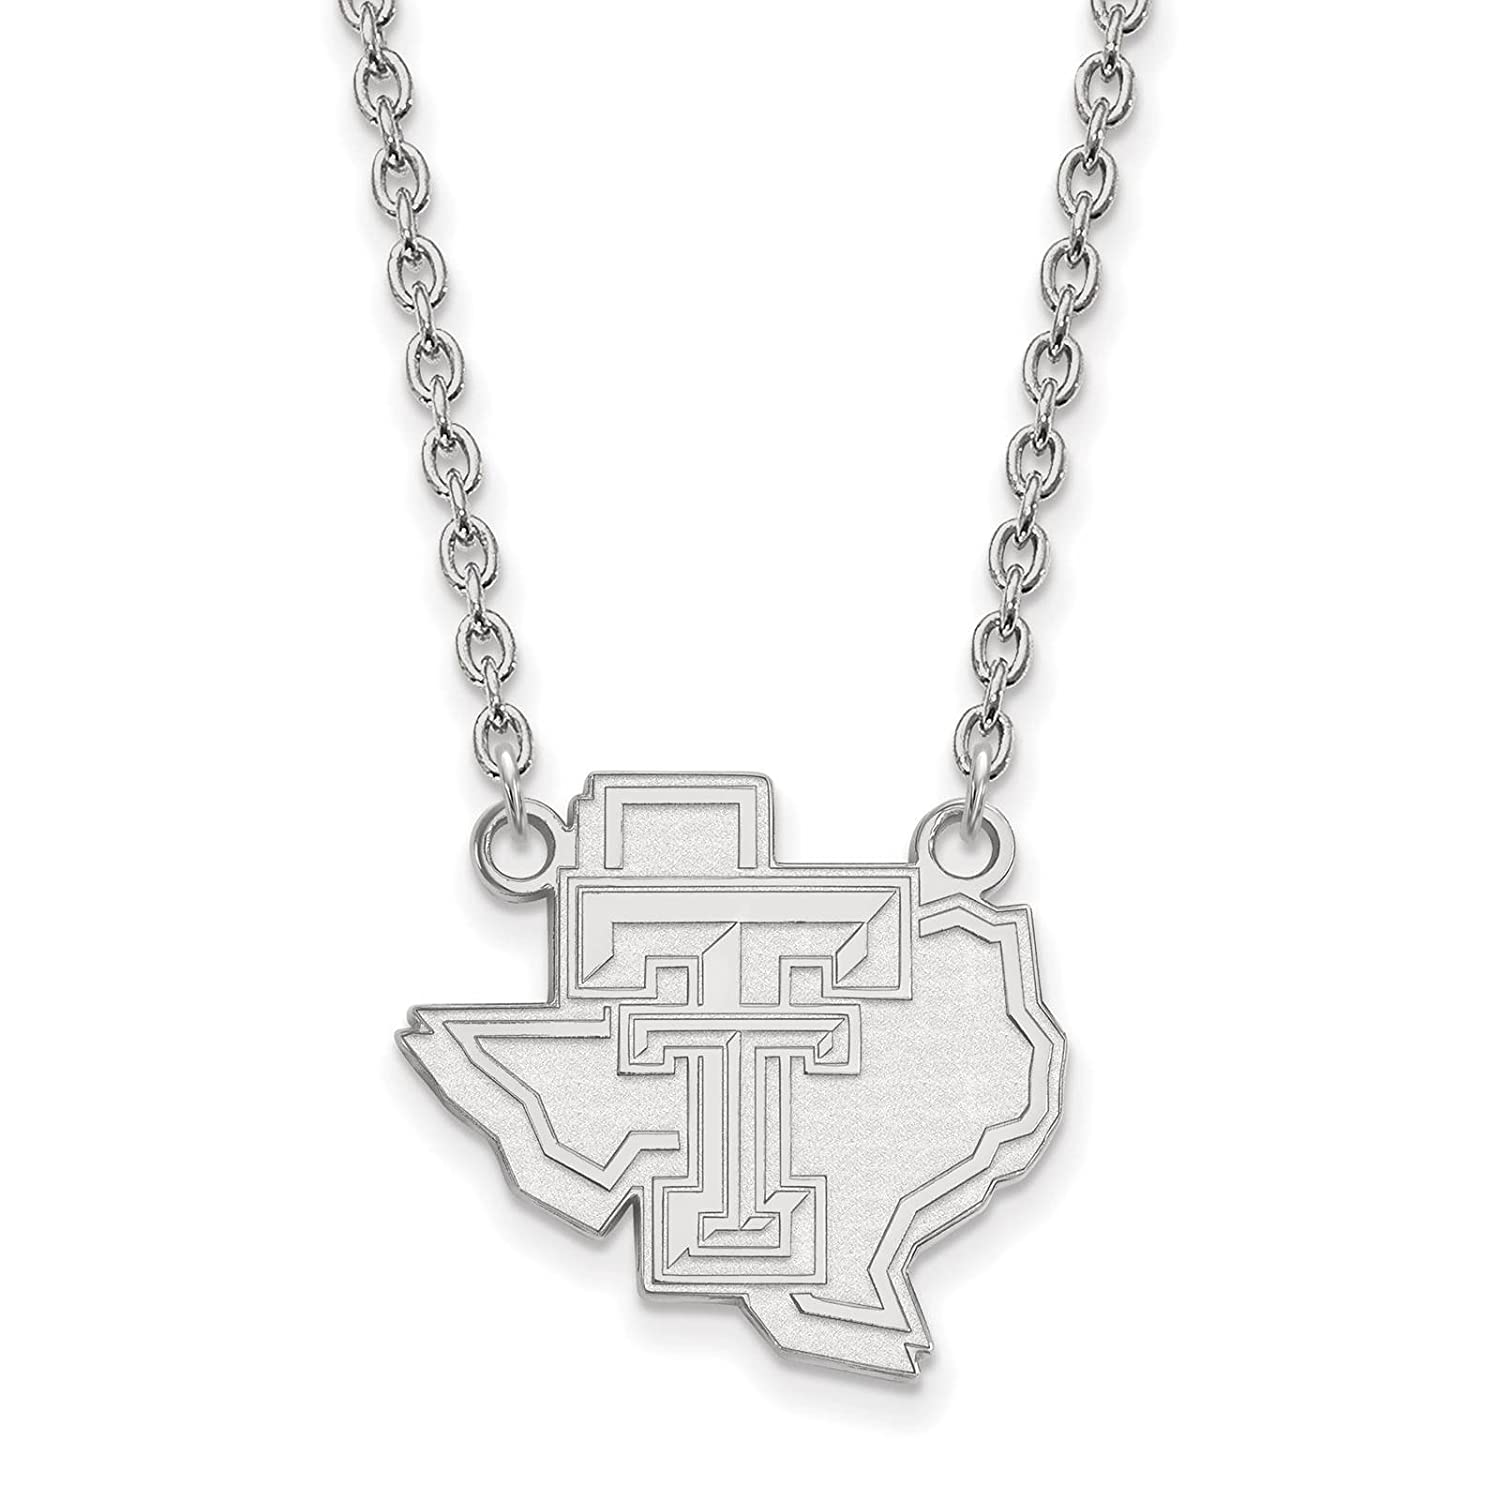 925 Sterling Silver Rhodium-plated Laser-cut Texas Tech University Large Pendant w//Necklace 18